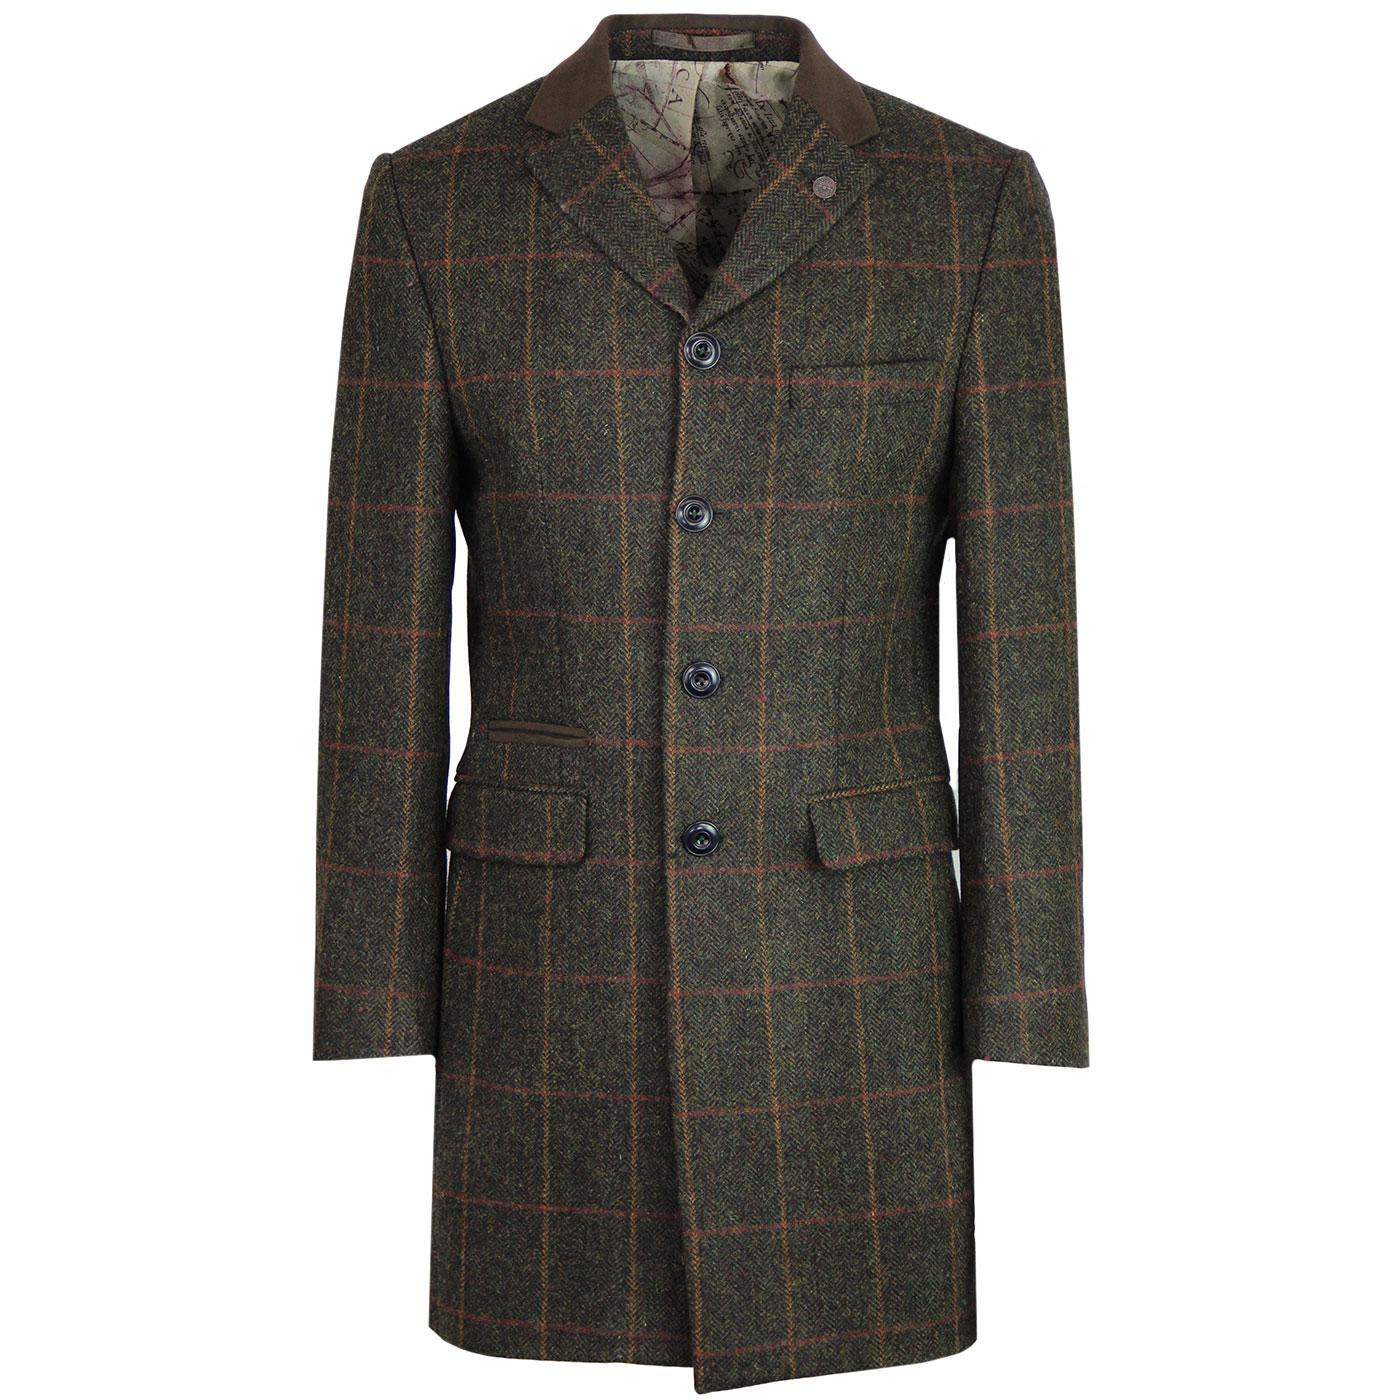 Winnie GIBSON LONDON Herringbone Check Dress Coat